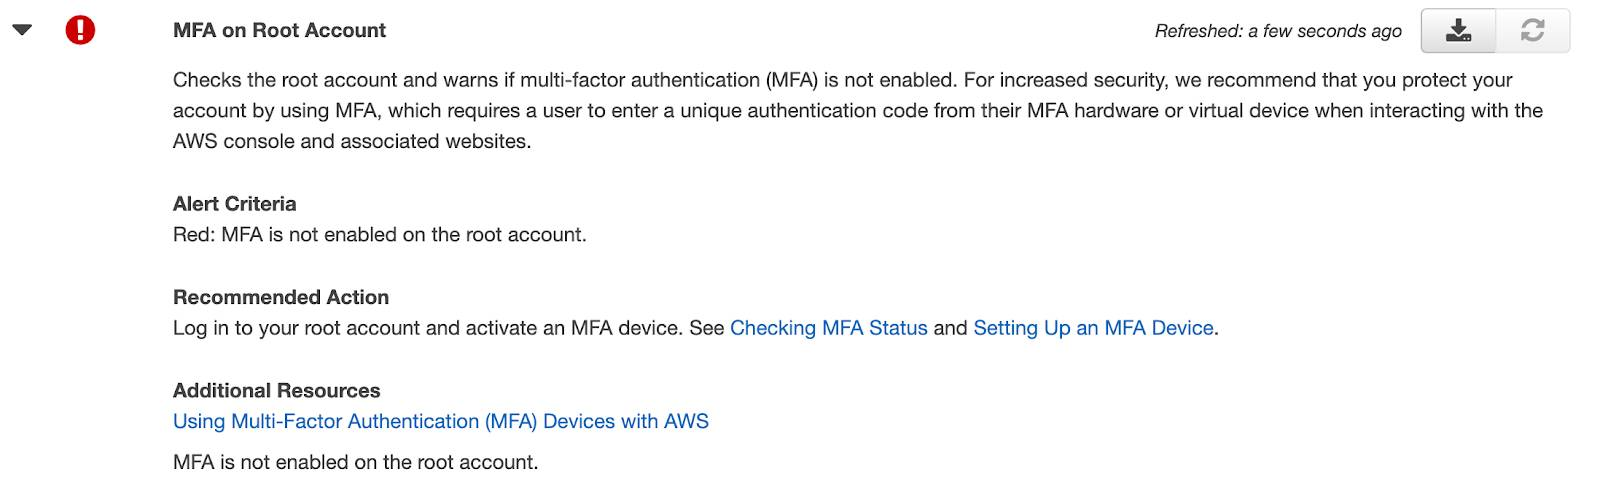 MFA on Root Account action that shows a recommended action to take; also showing Alert Criteria and Additional Resources.